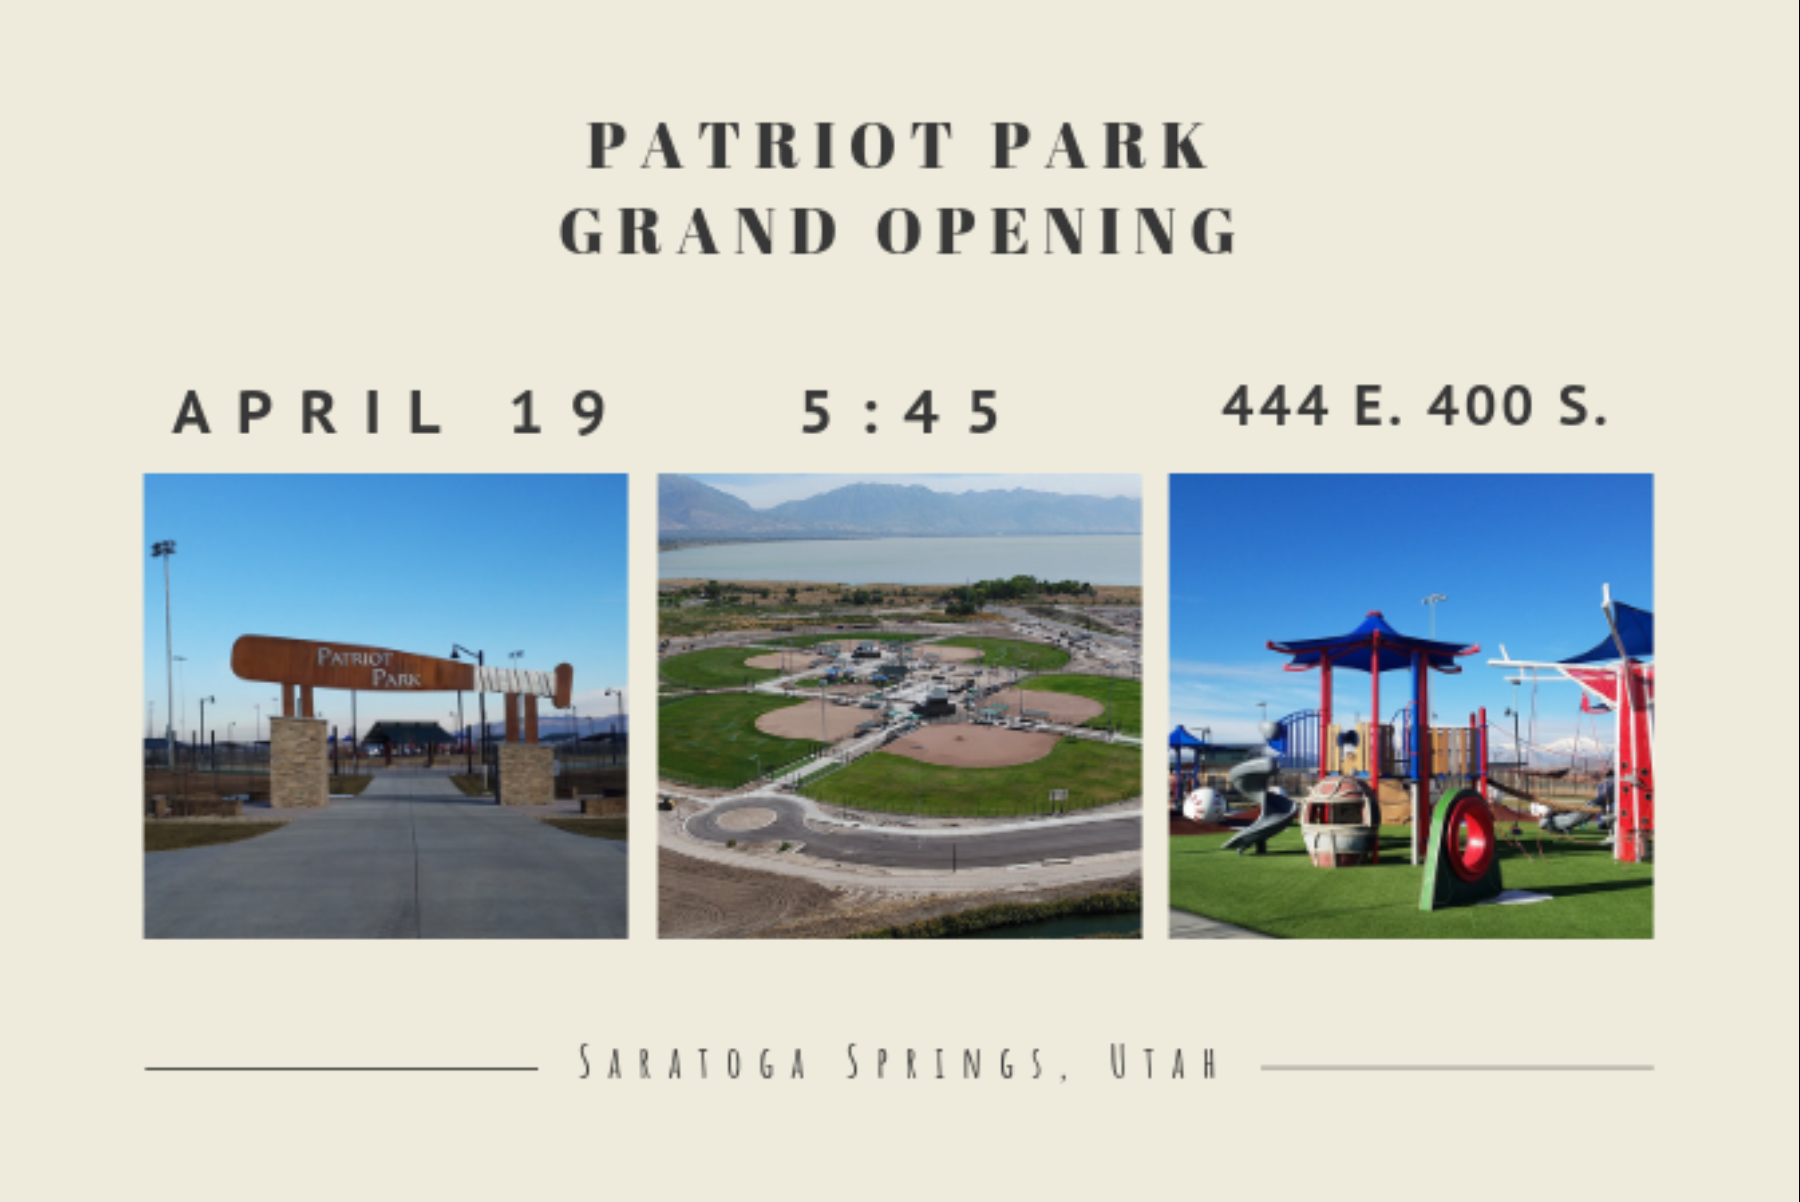 Patriot Park grand opening advertisement